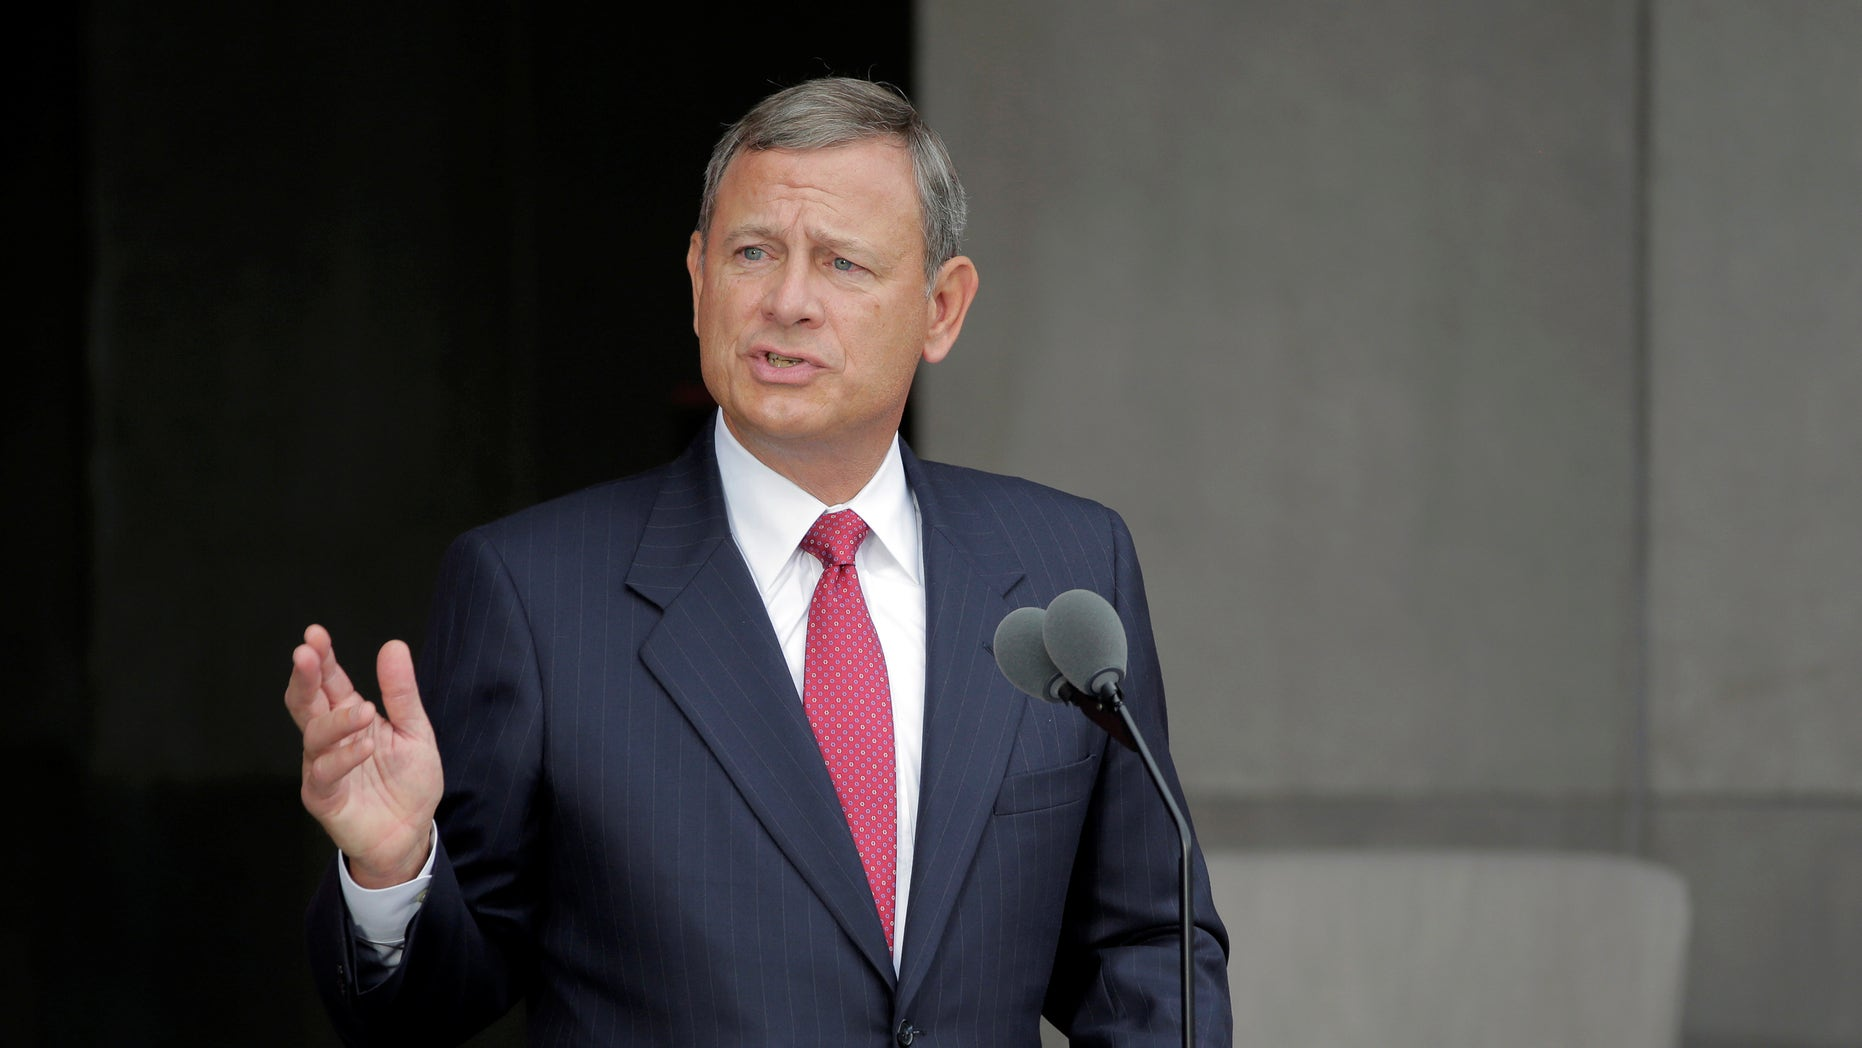 Chief Justice John Roberts has an opportunity to wield new power on the Supreme Court, as the 'swing' justice in the wake of Anthony Kennedy's retirement.